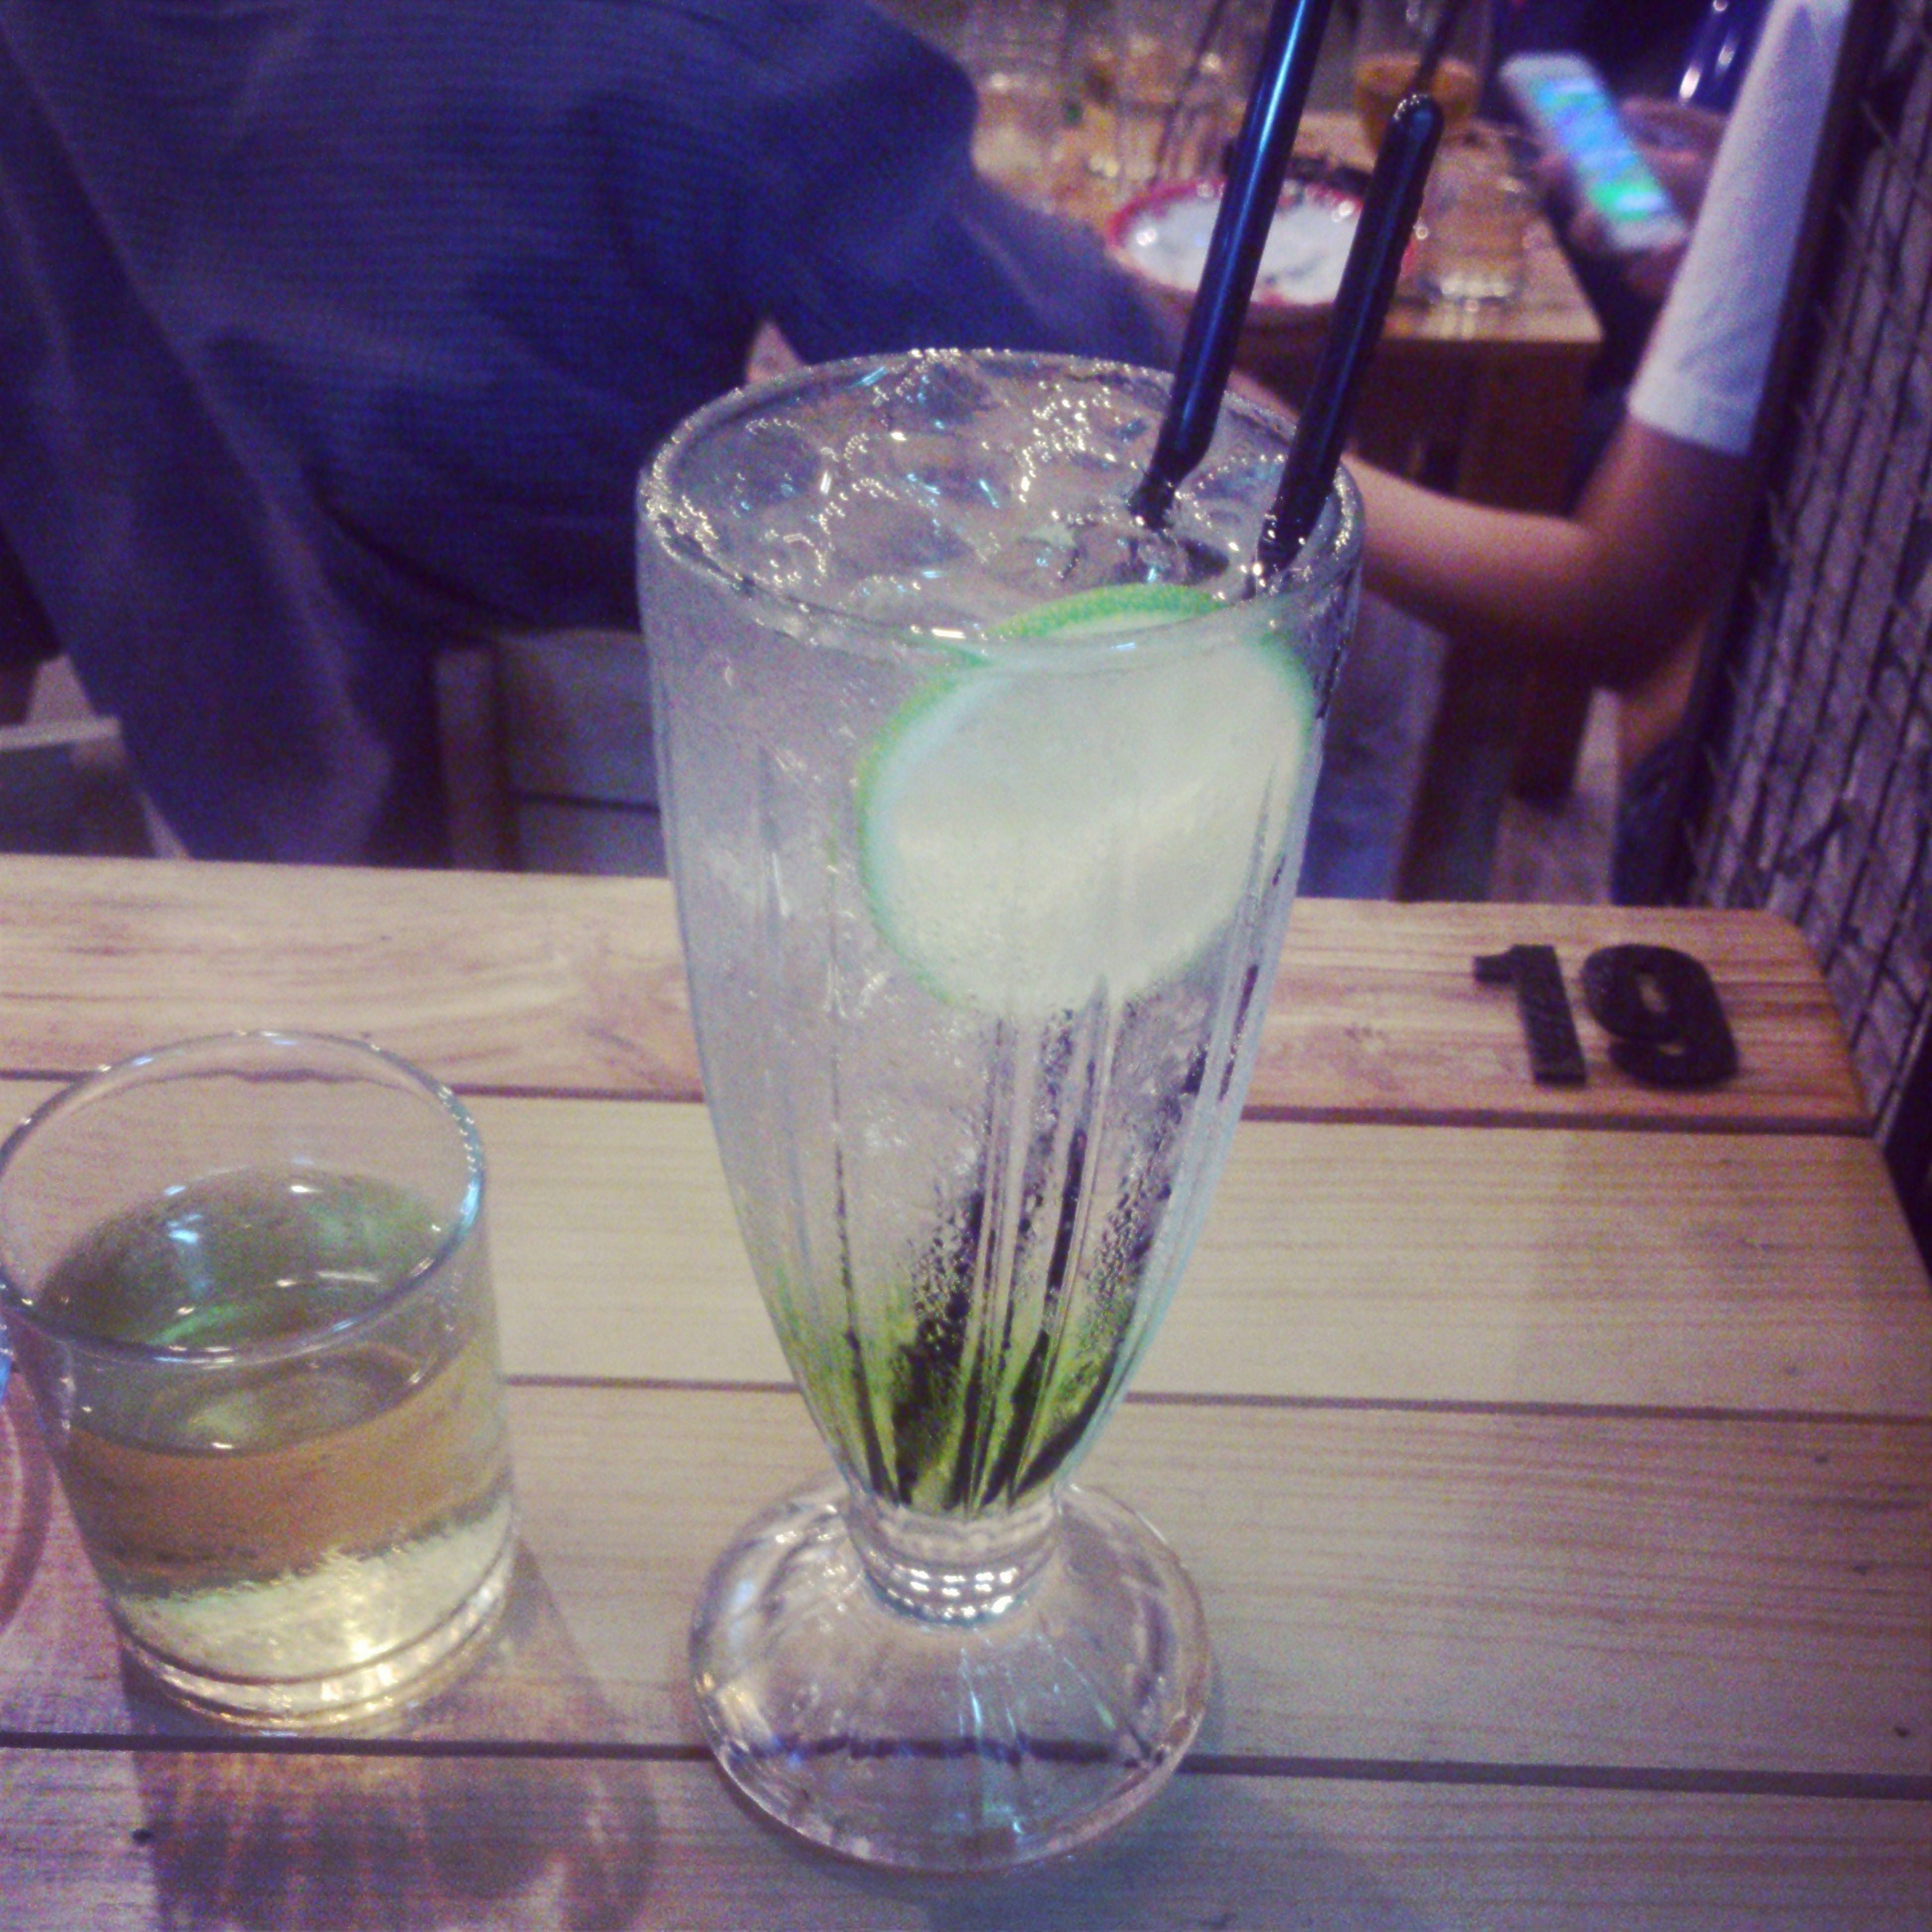 drink, food and drink, drinking glass, refreshment, table, freshness, alcohol, glass - material, indoors, drinking straw, still life, cocktail, close-up, transparent, glass, wineglass, restaurant, juice, focus on foreground, ice cube